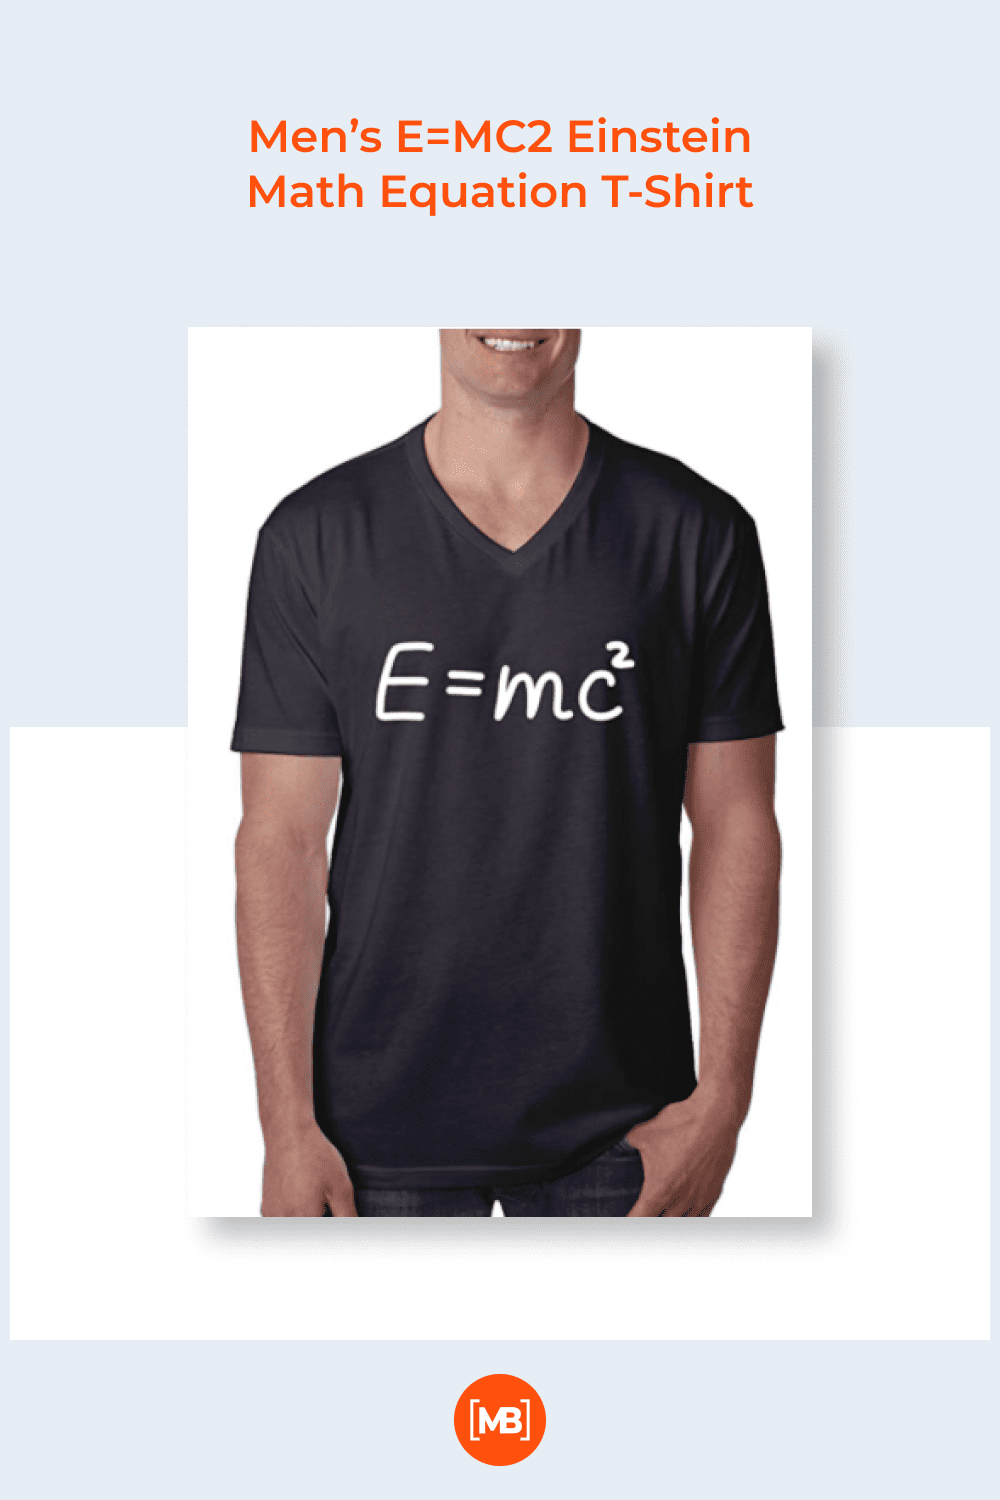 Classic black mens T-shirt with creative font lettering.